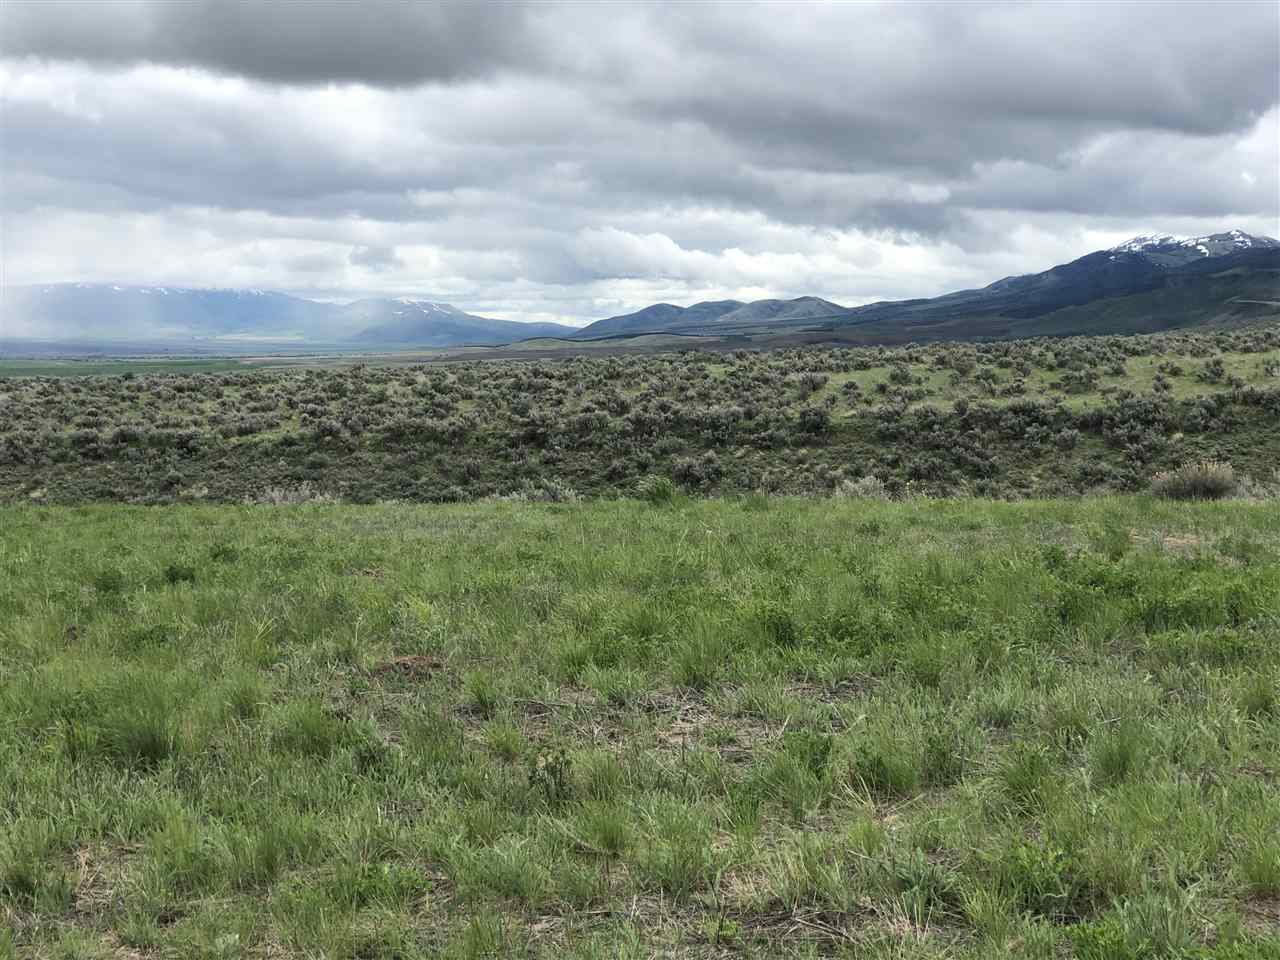 Tbd W Sublette Rd Upper Lot 1 Property Photo